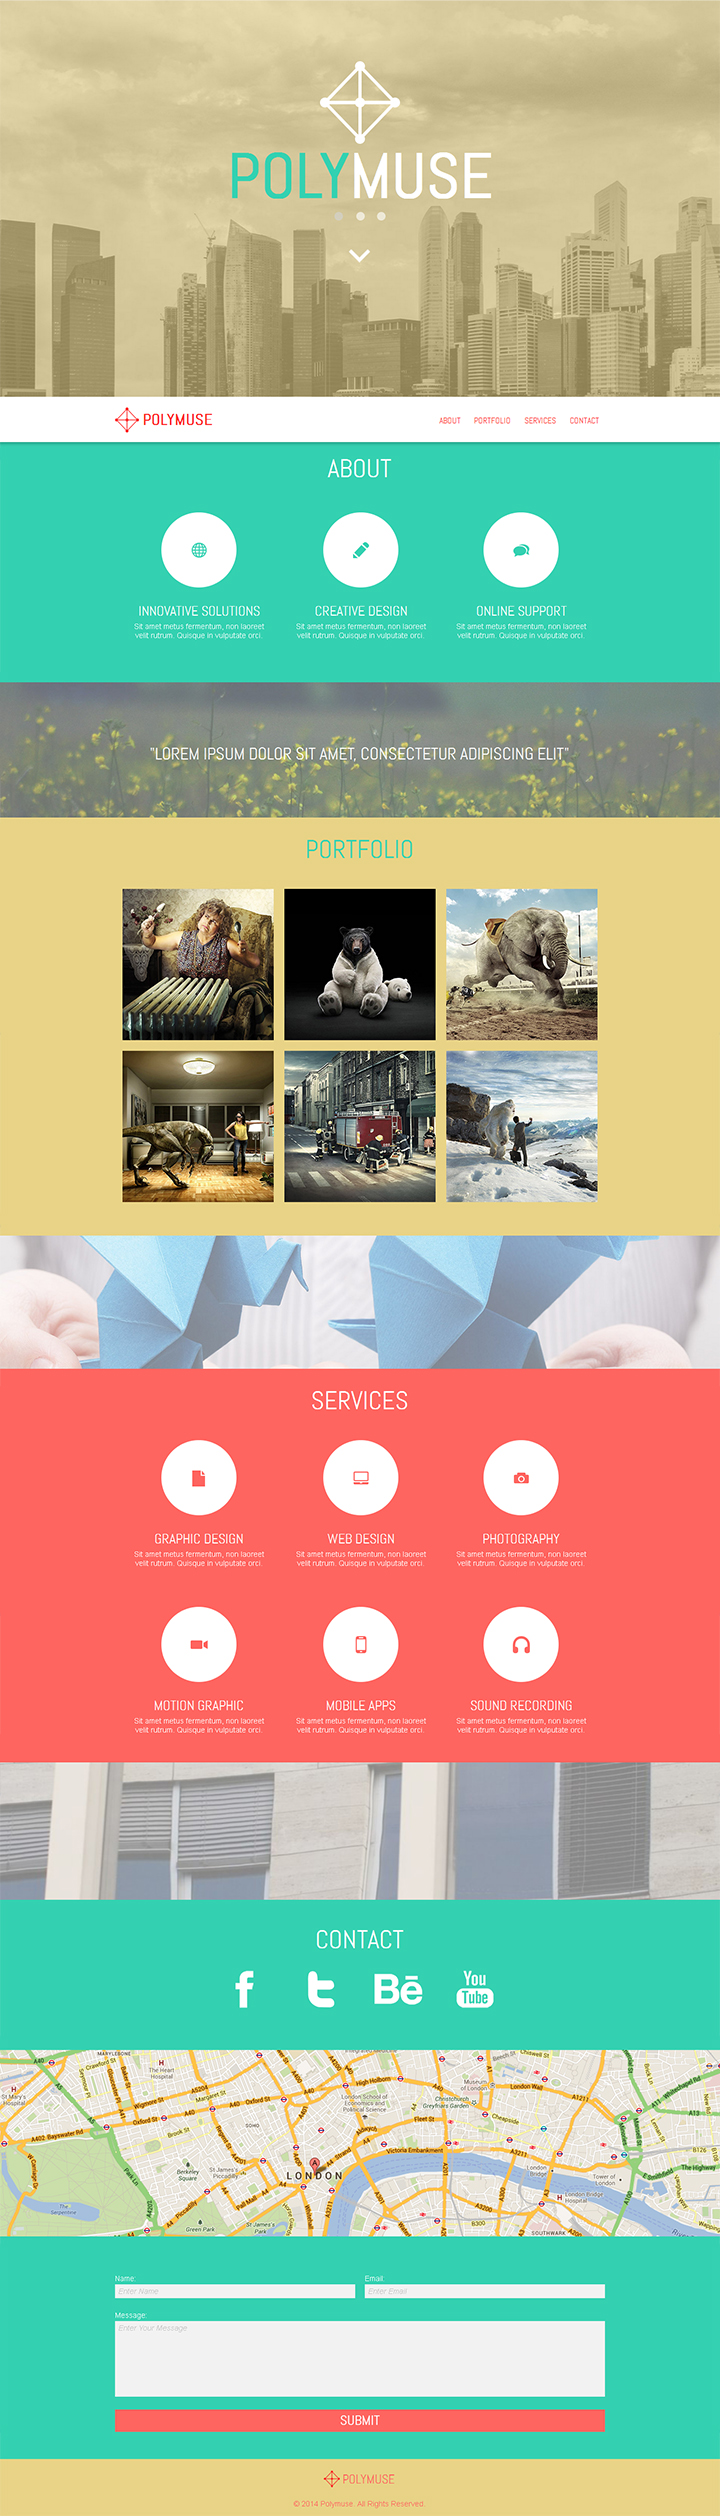 Polymuse One Page Parallax Muse Template By Pixelladyart On Deviantart